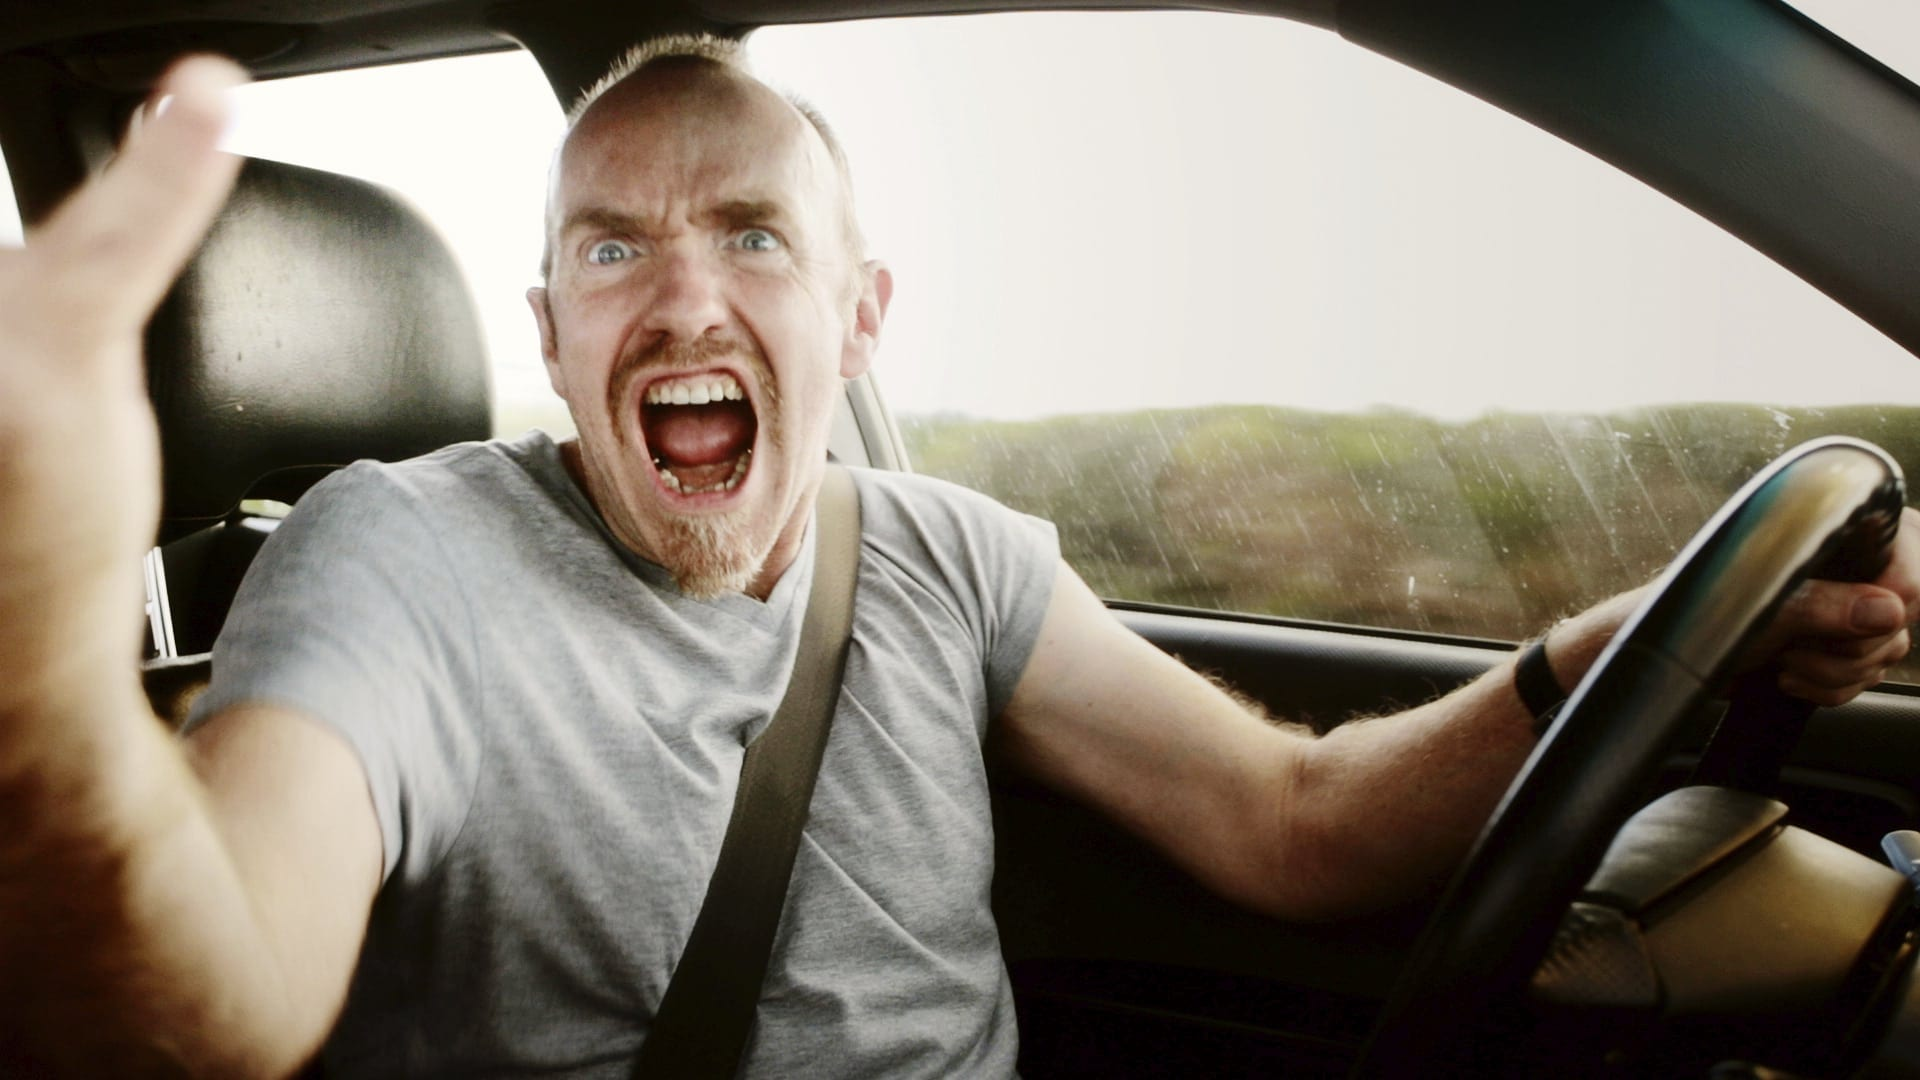 Man Shouting And Expressing Anger While Driving Stock Photo